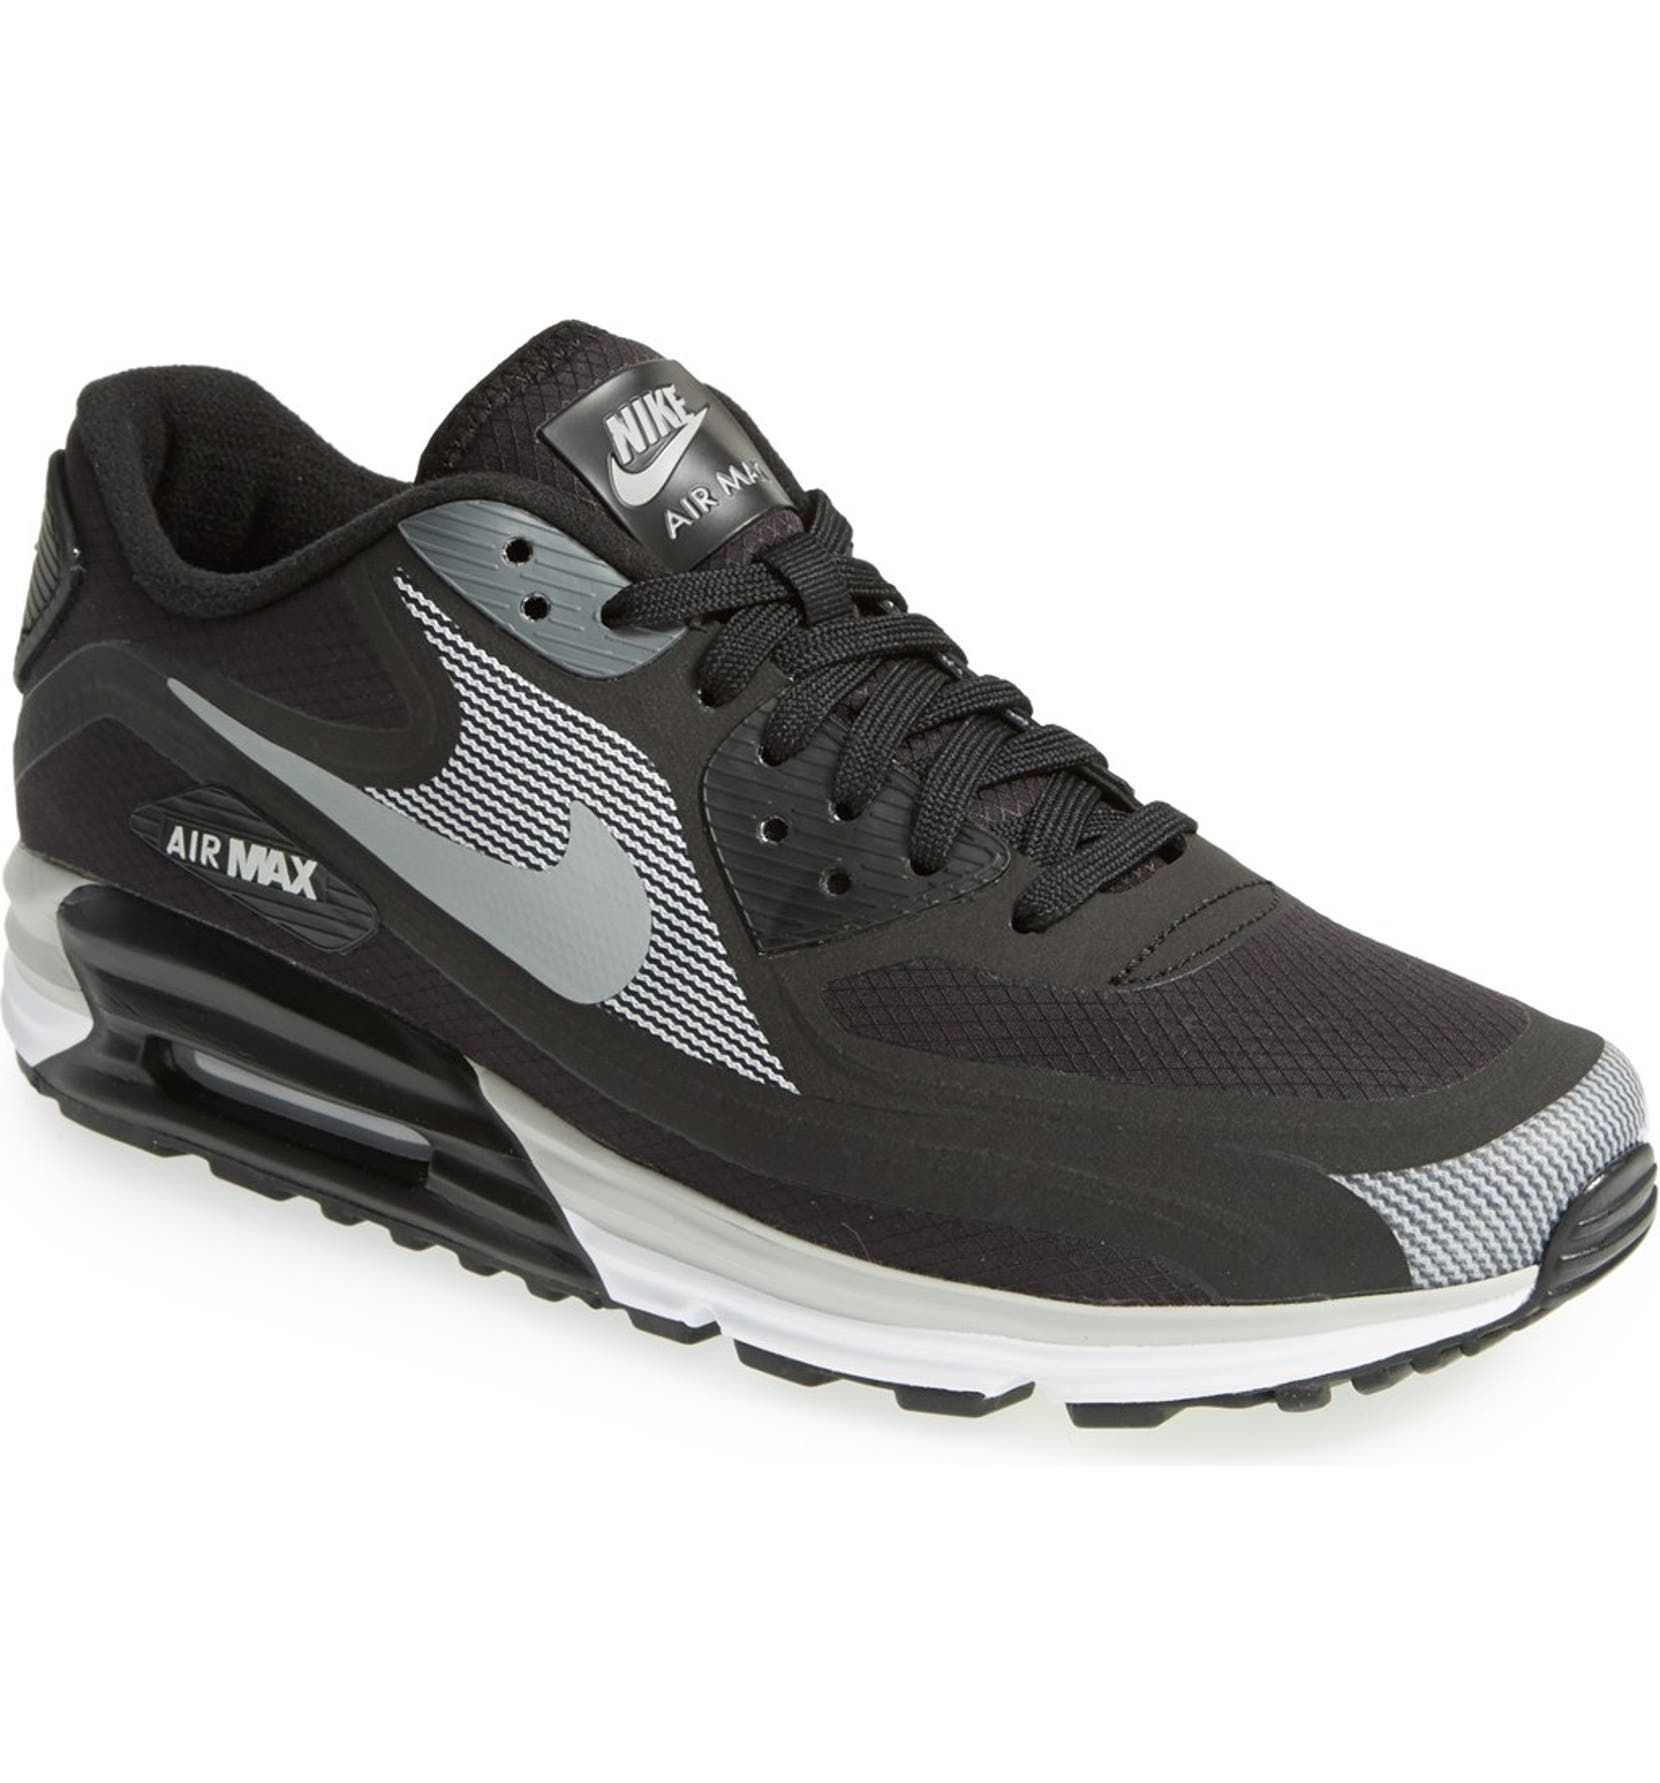 competitive price c03ac c0392 Nike  Air Max Lunar 90 - Water Resistant  Sneaker (Men)   Nordstrom